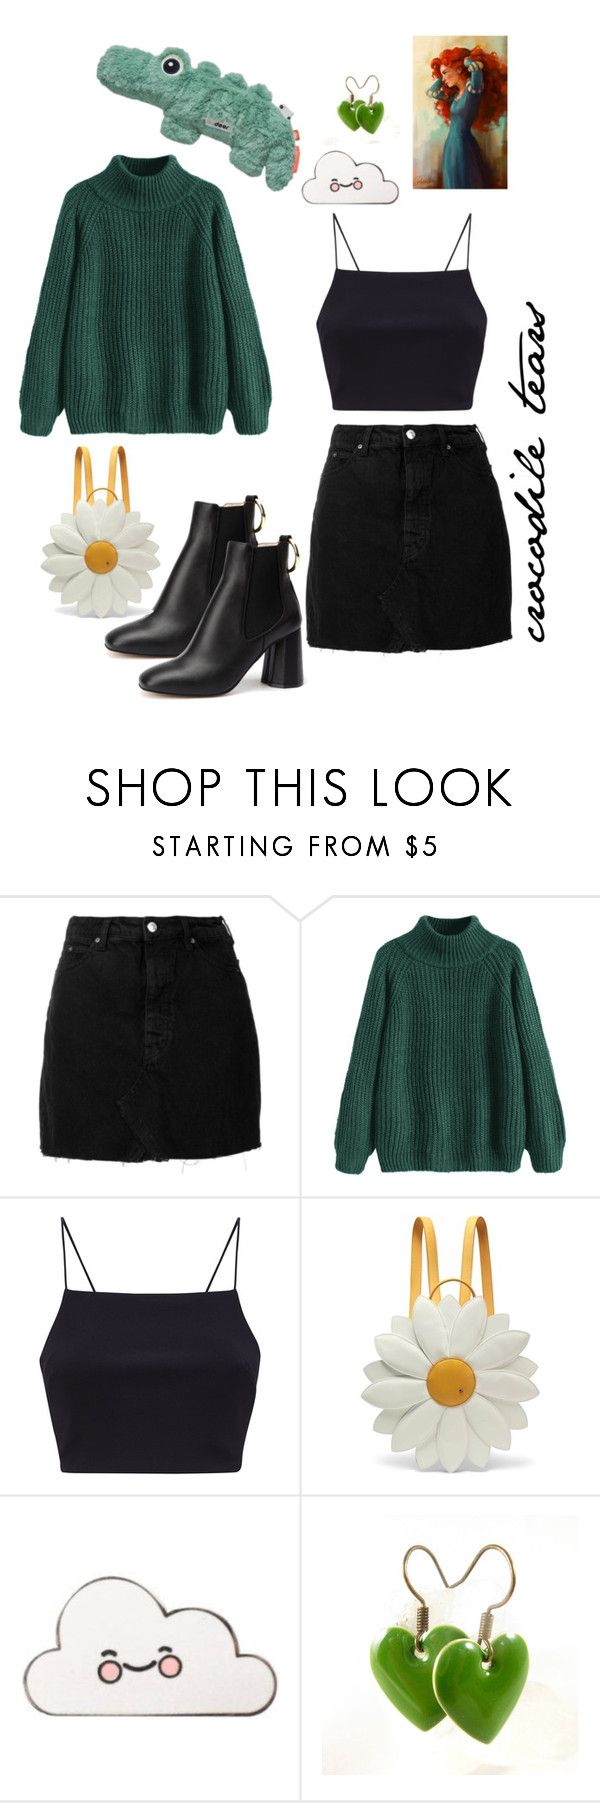 """Crocodile tears"" by actuallyariel ❤ liked on Polyvore featuring IRO and Charlotte Olympia"